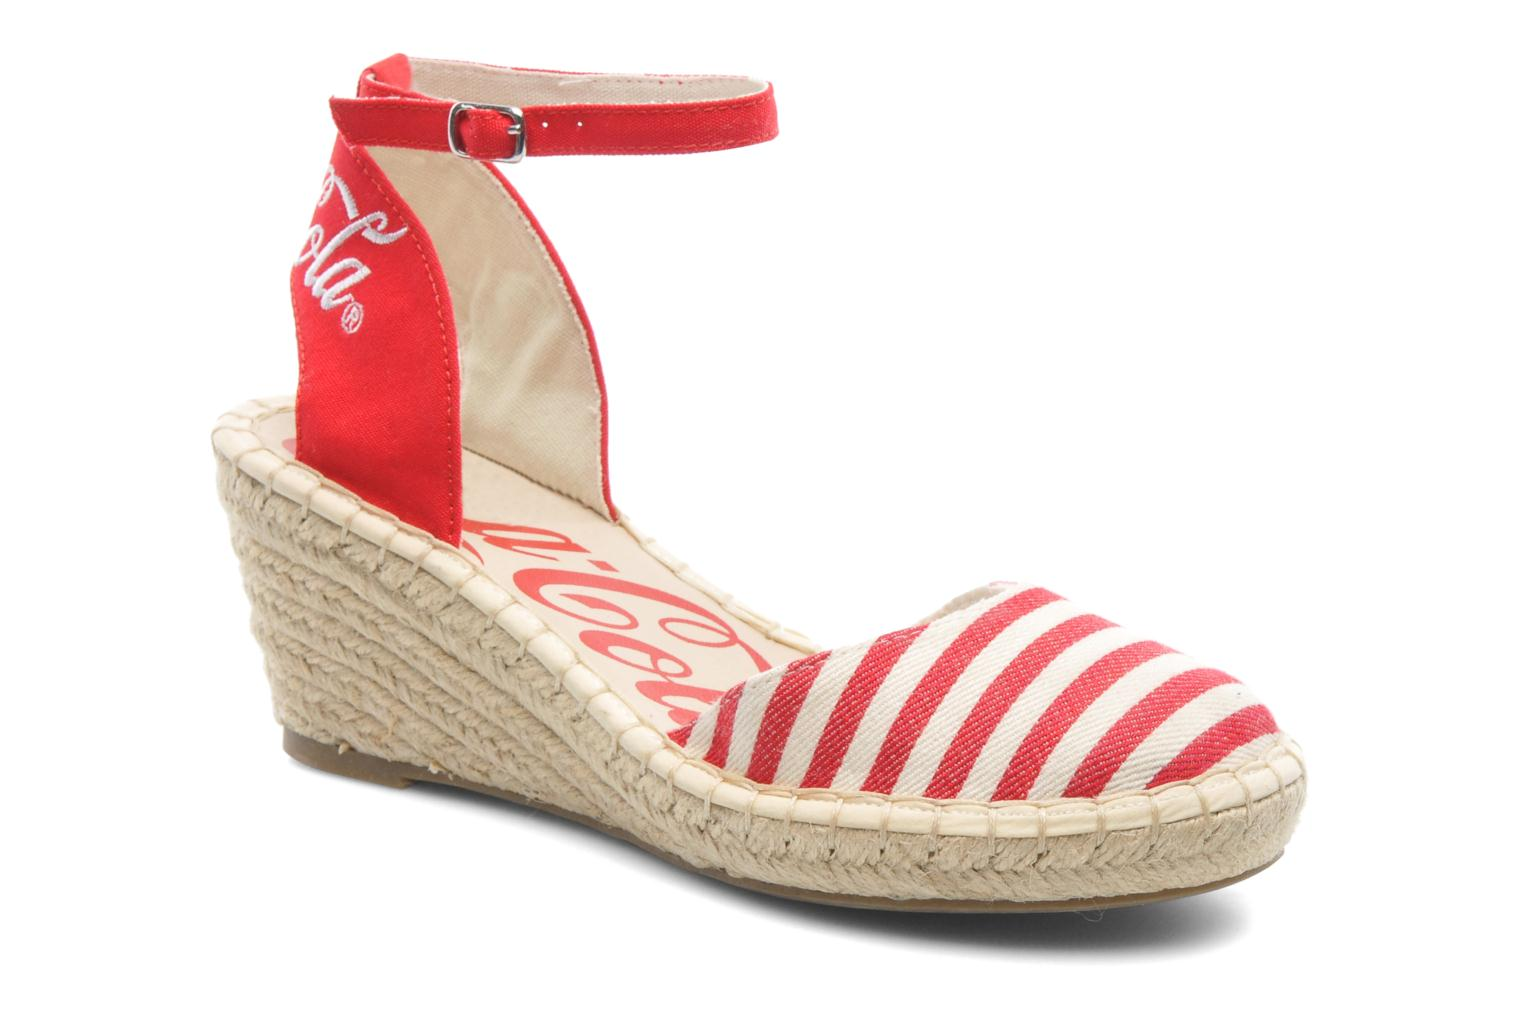 Espadrilles Juta City by Coca-cola shoes